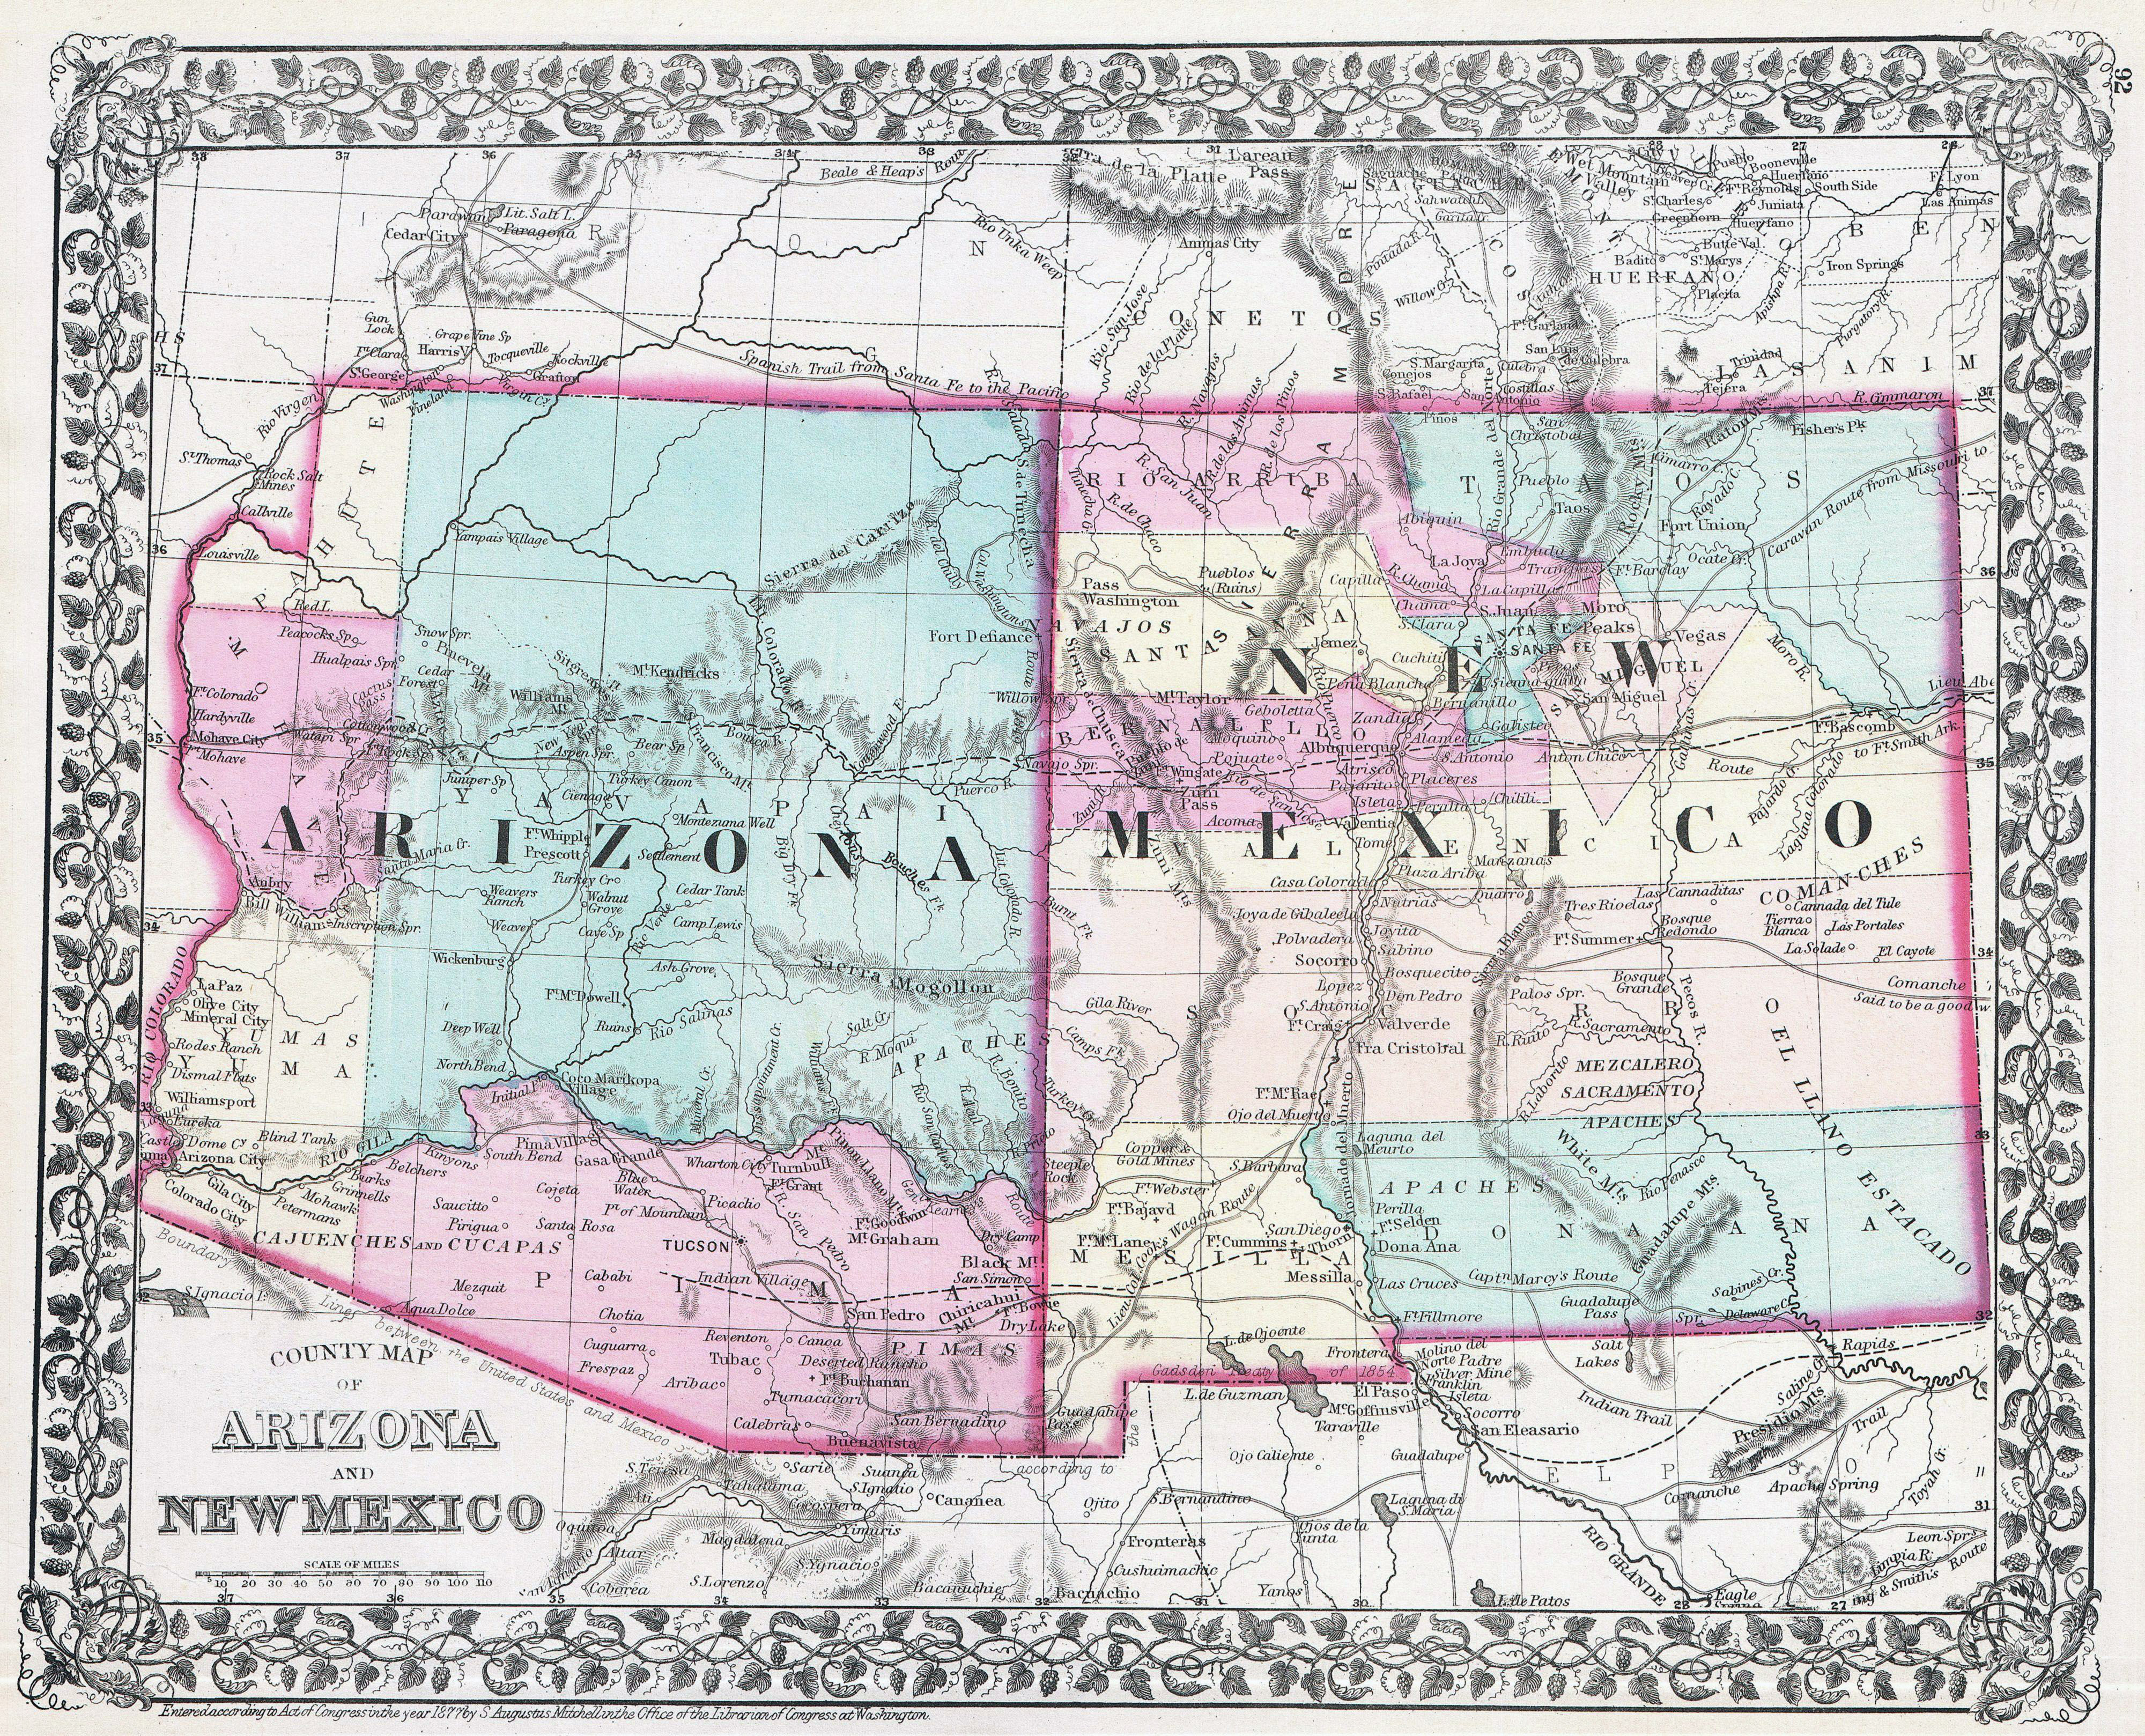 Large detailed old map of Arizona and New Mexico states 1877